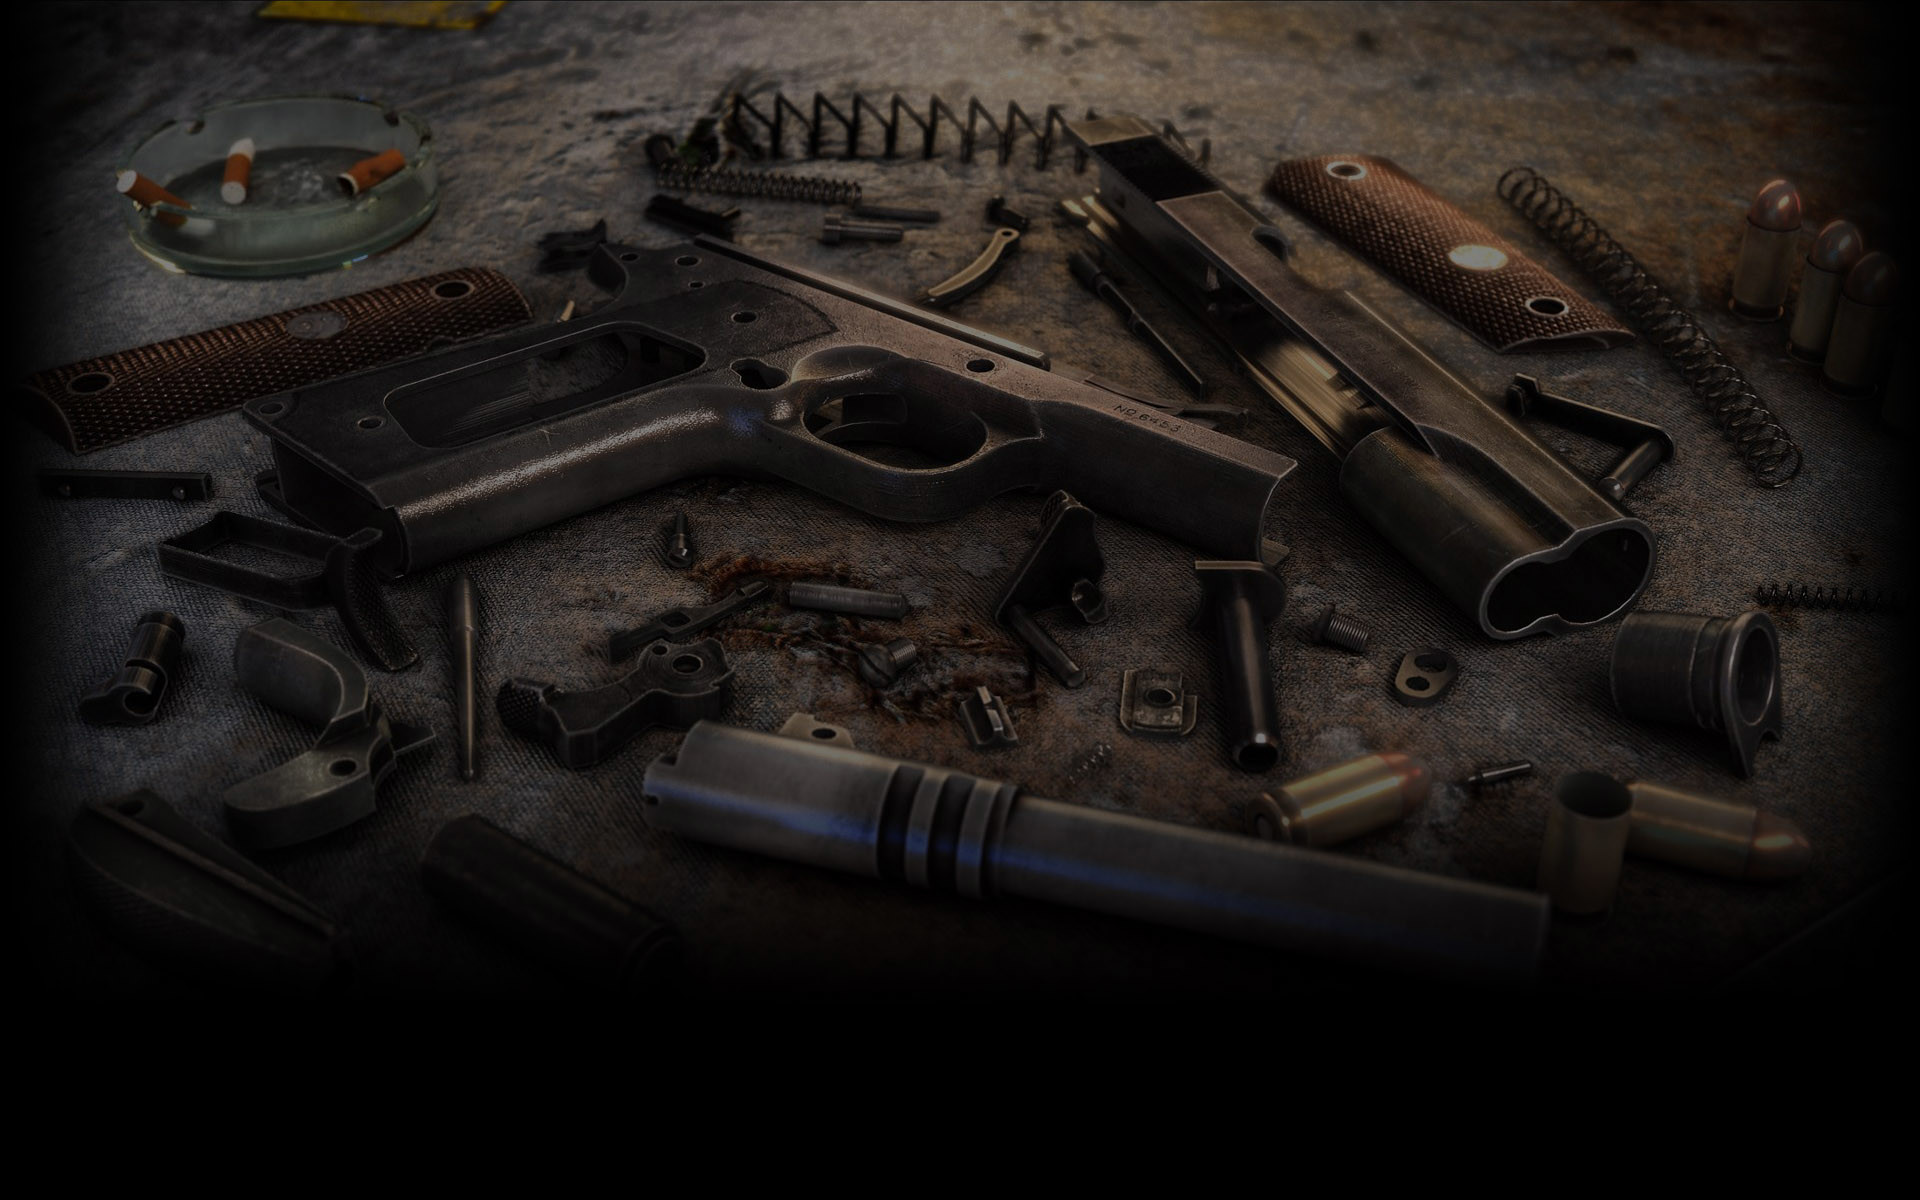 1920x1200 ... Disassembly Profile Background. Disassembled Colt M1911. View Full Size